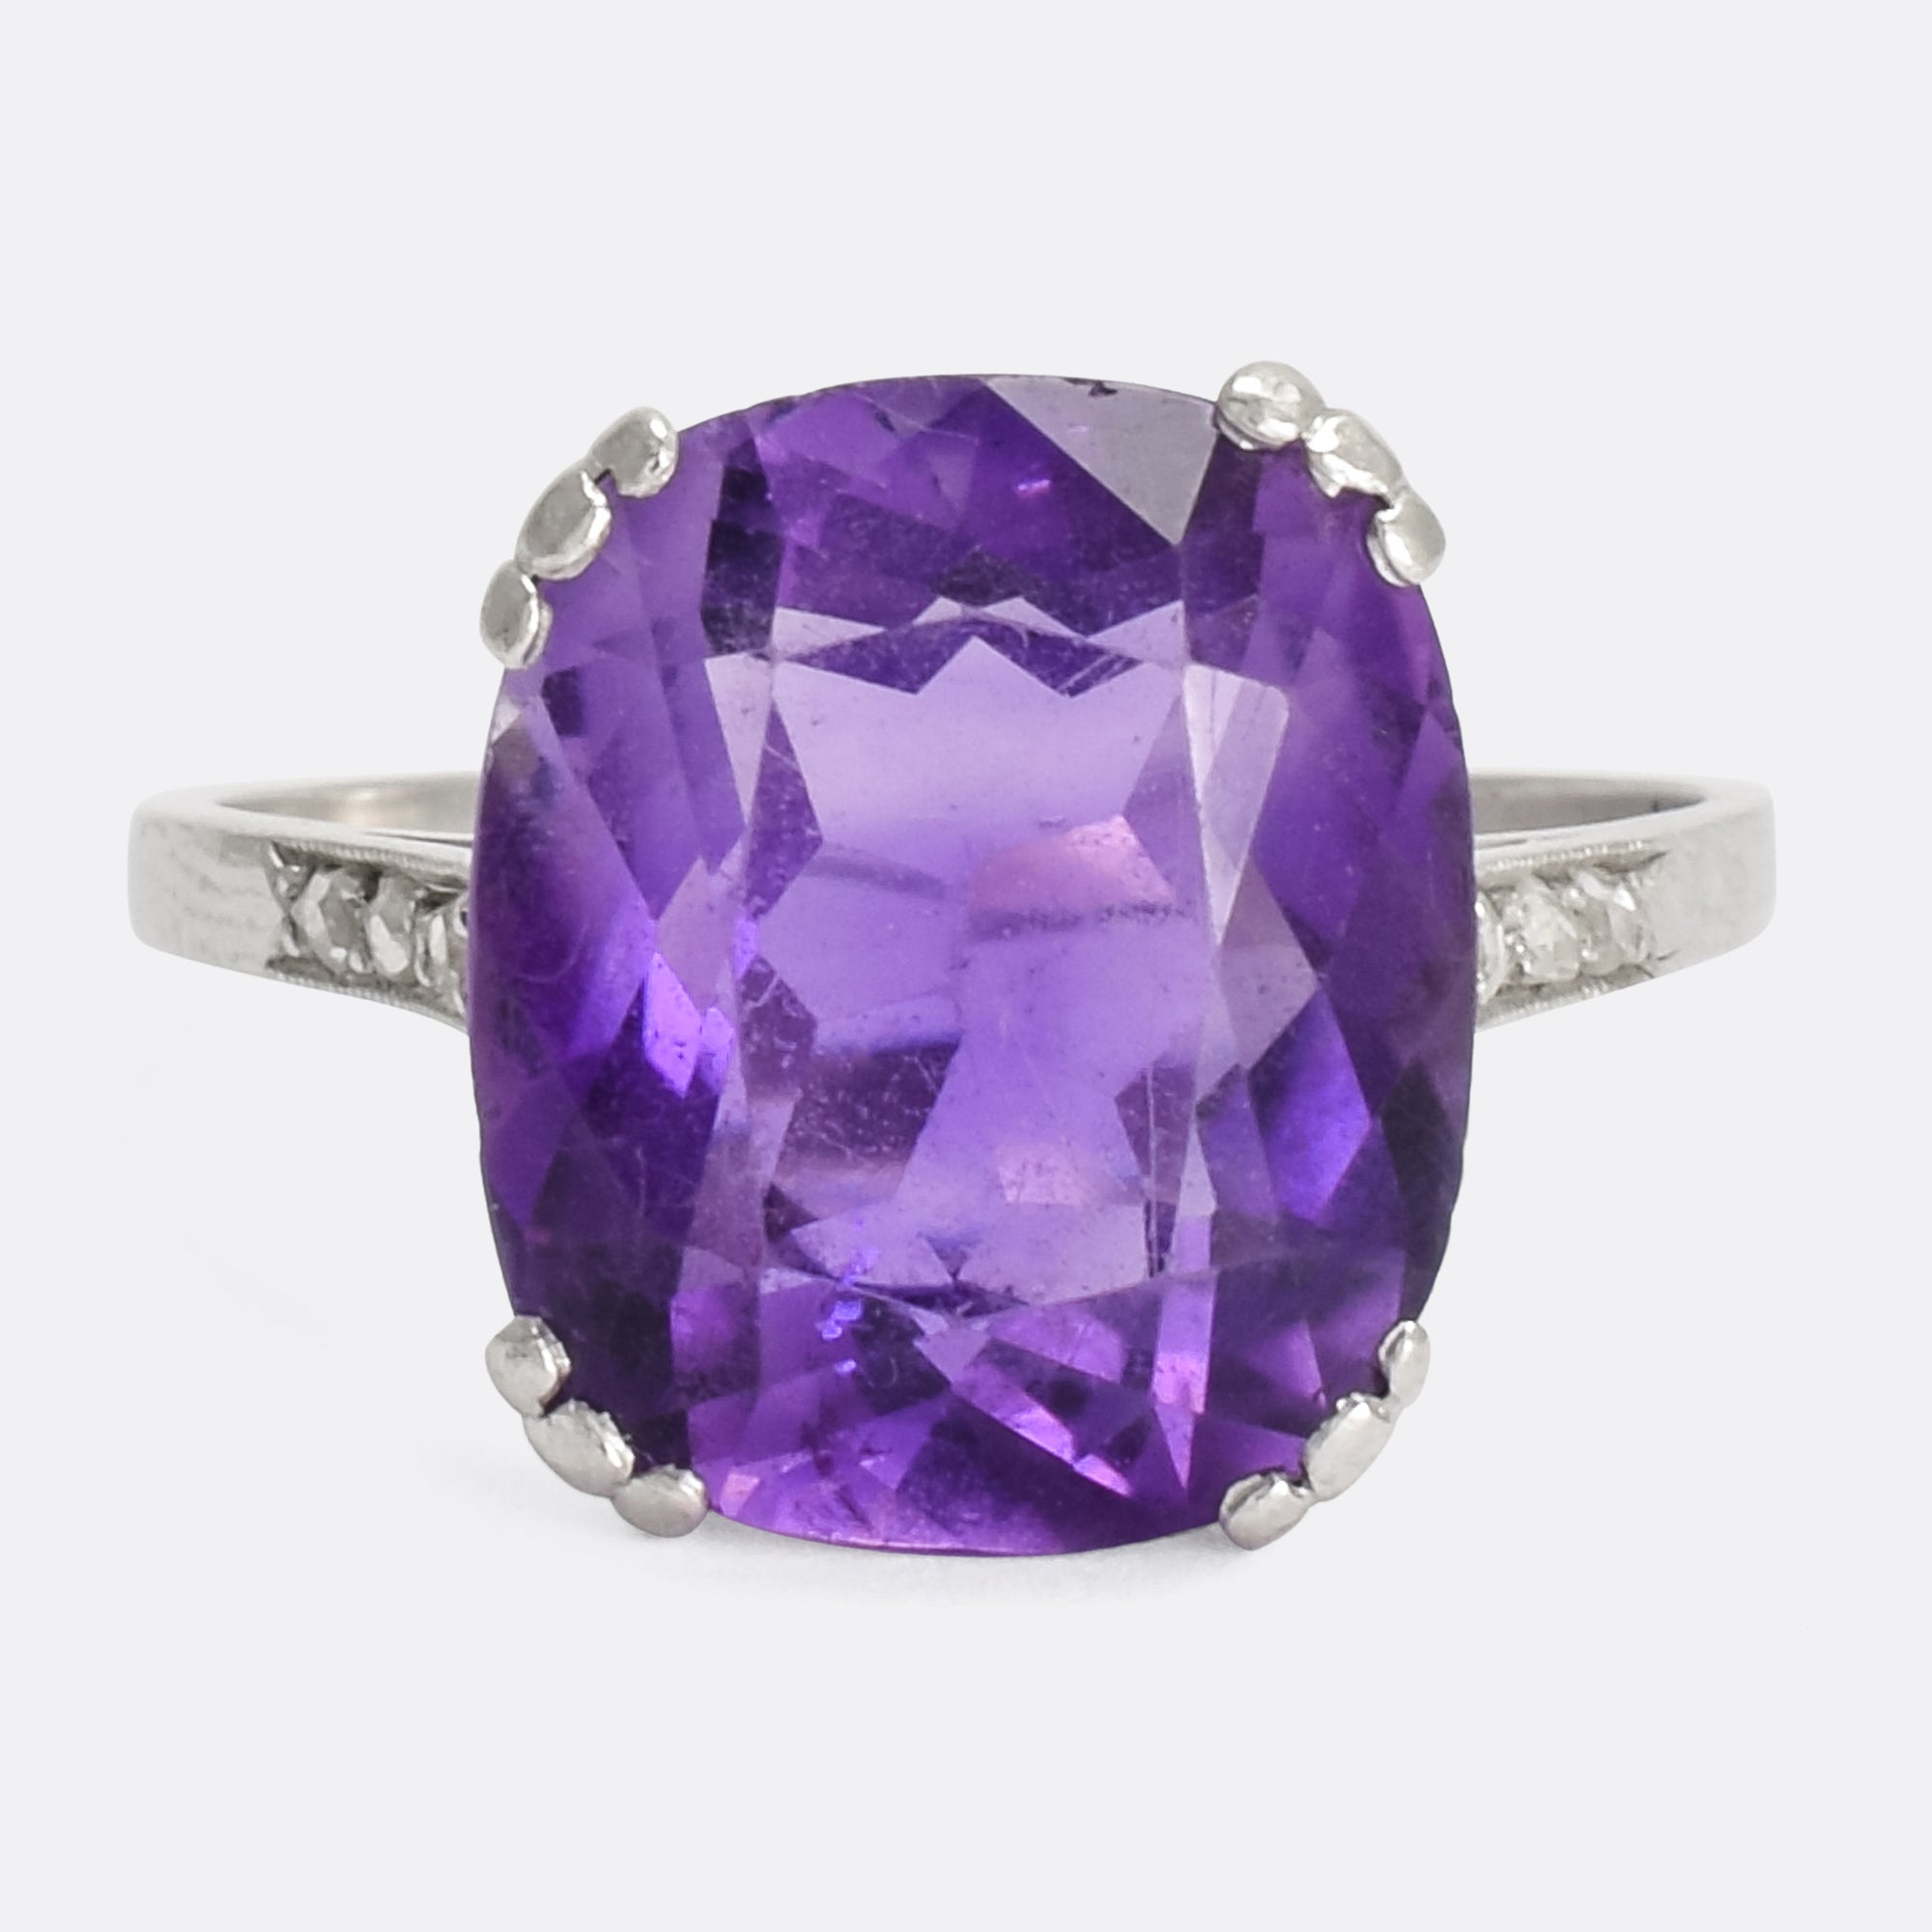 sterling rings amethyst amatist products collections jewelry with engagement new ring arrival silver cat amethist